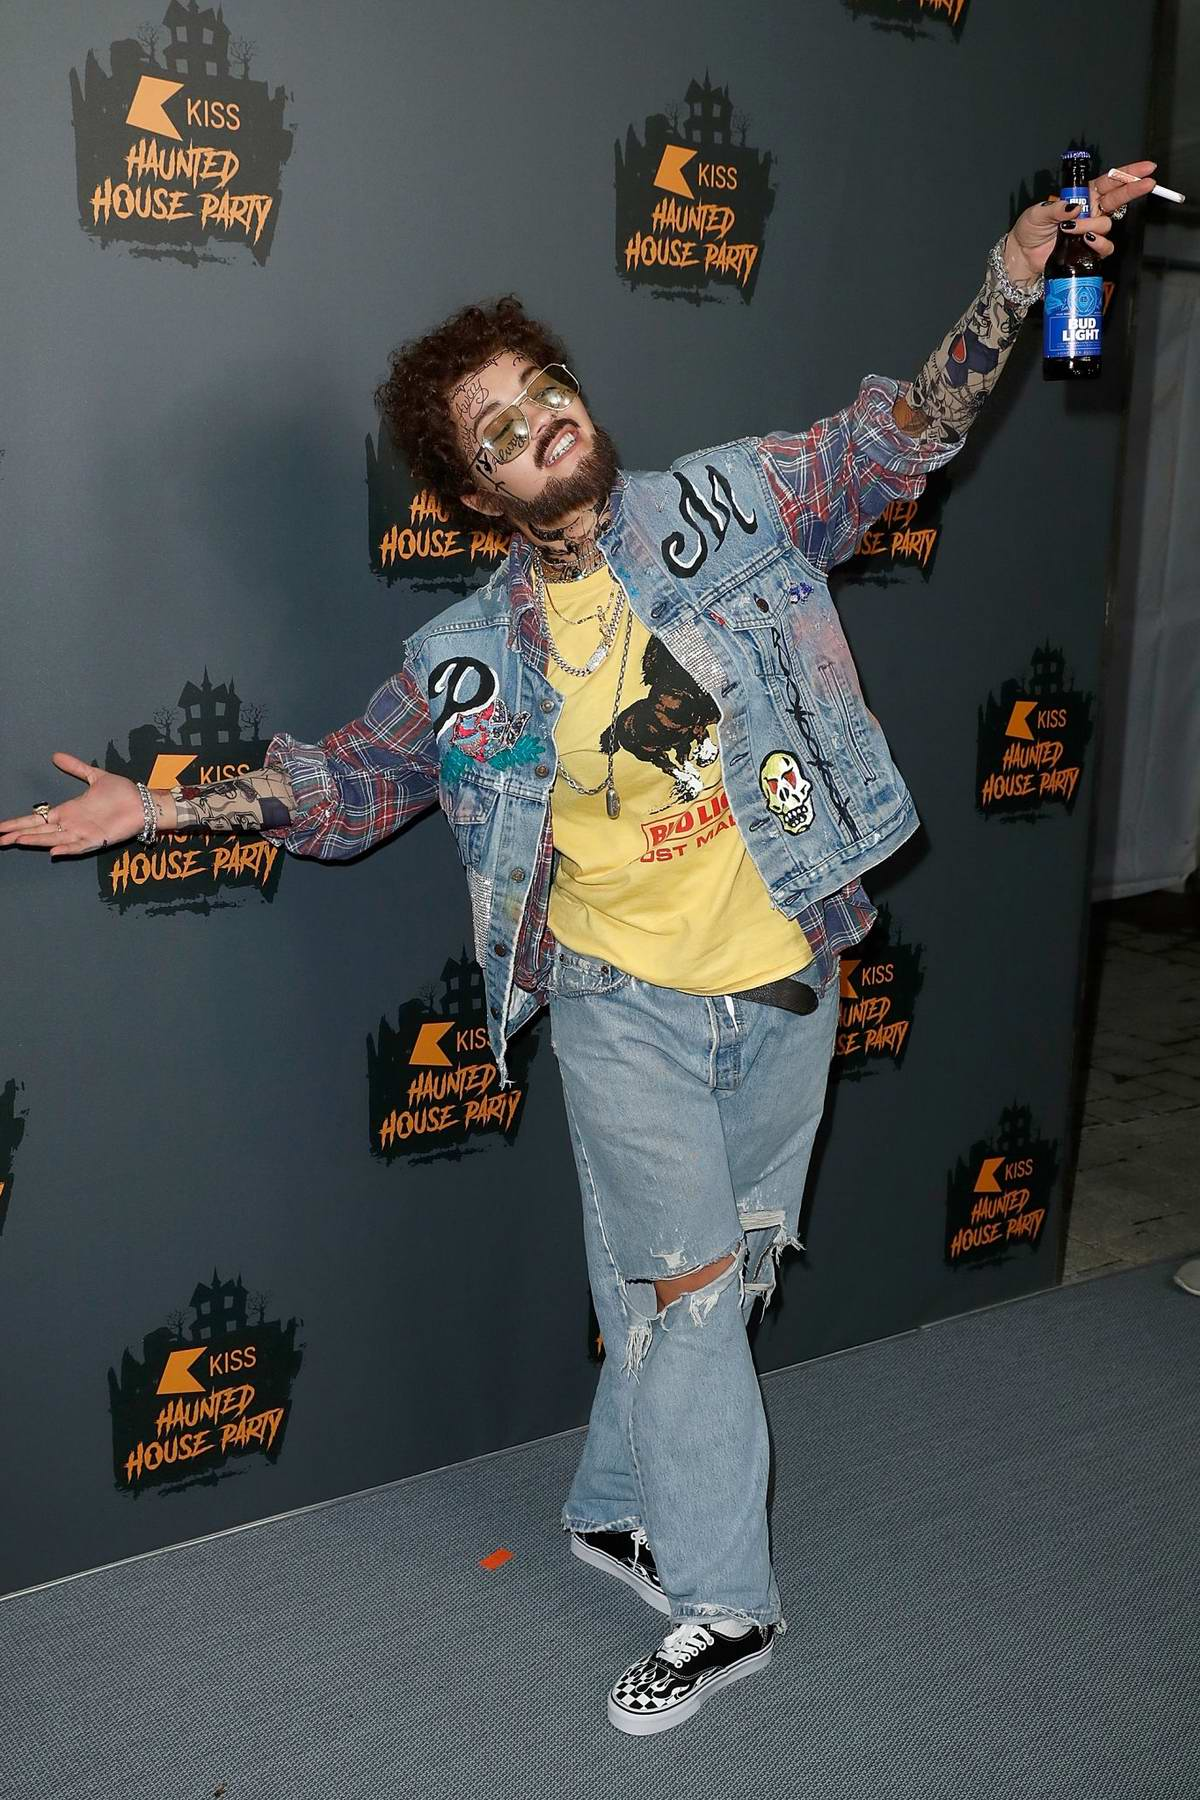 Rita Ora attends the KISS Haunted House Party 2018 in London, UK